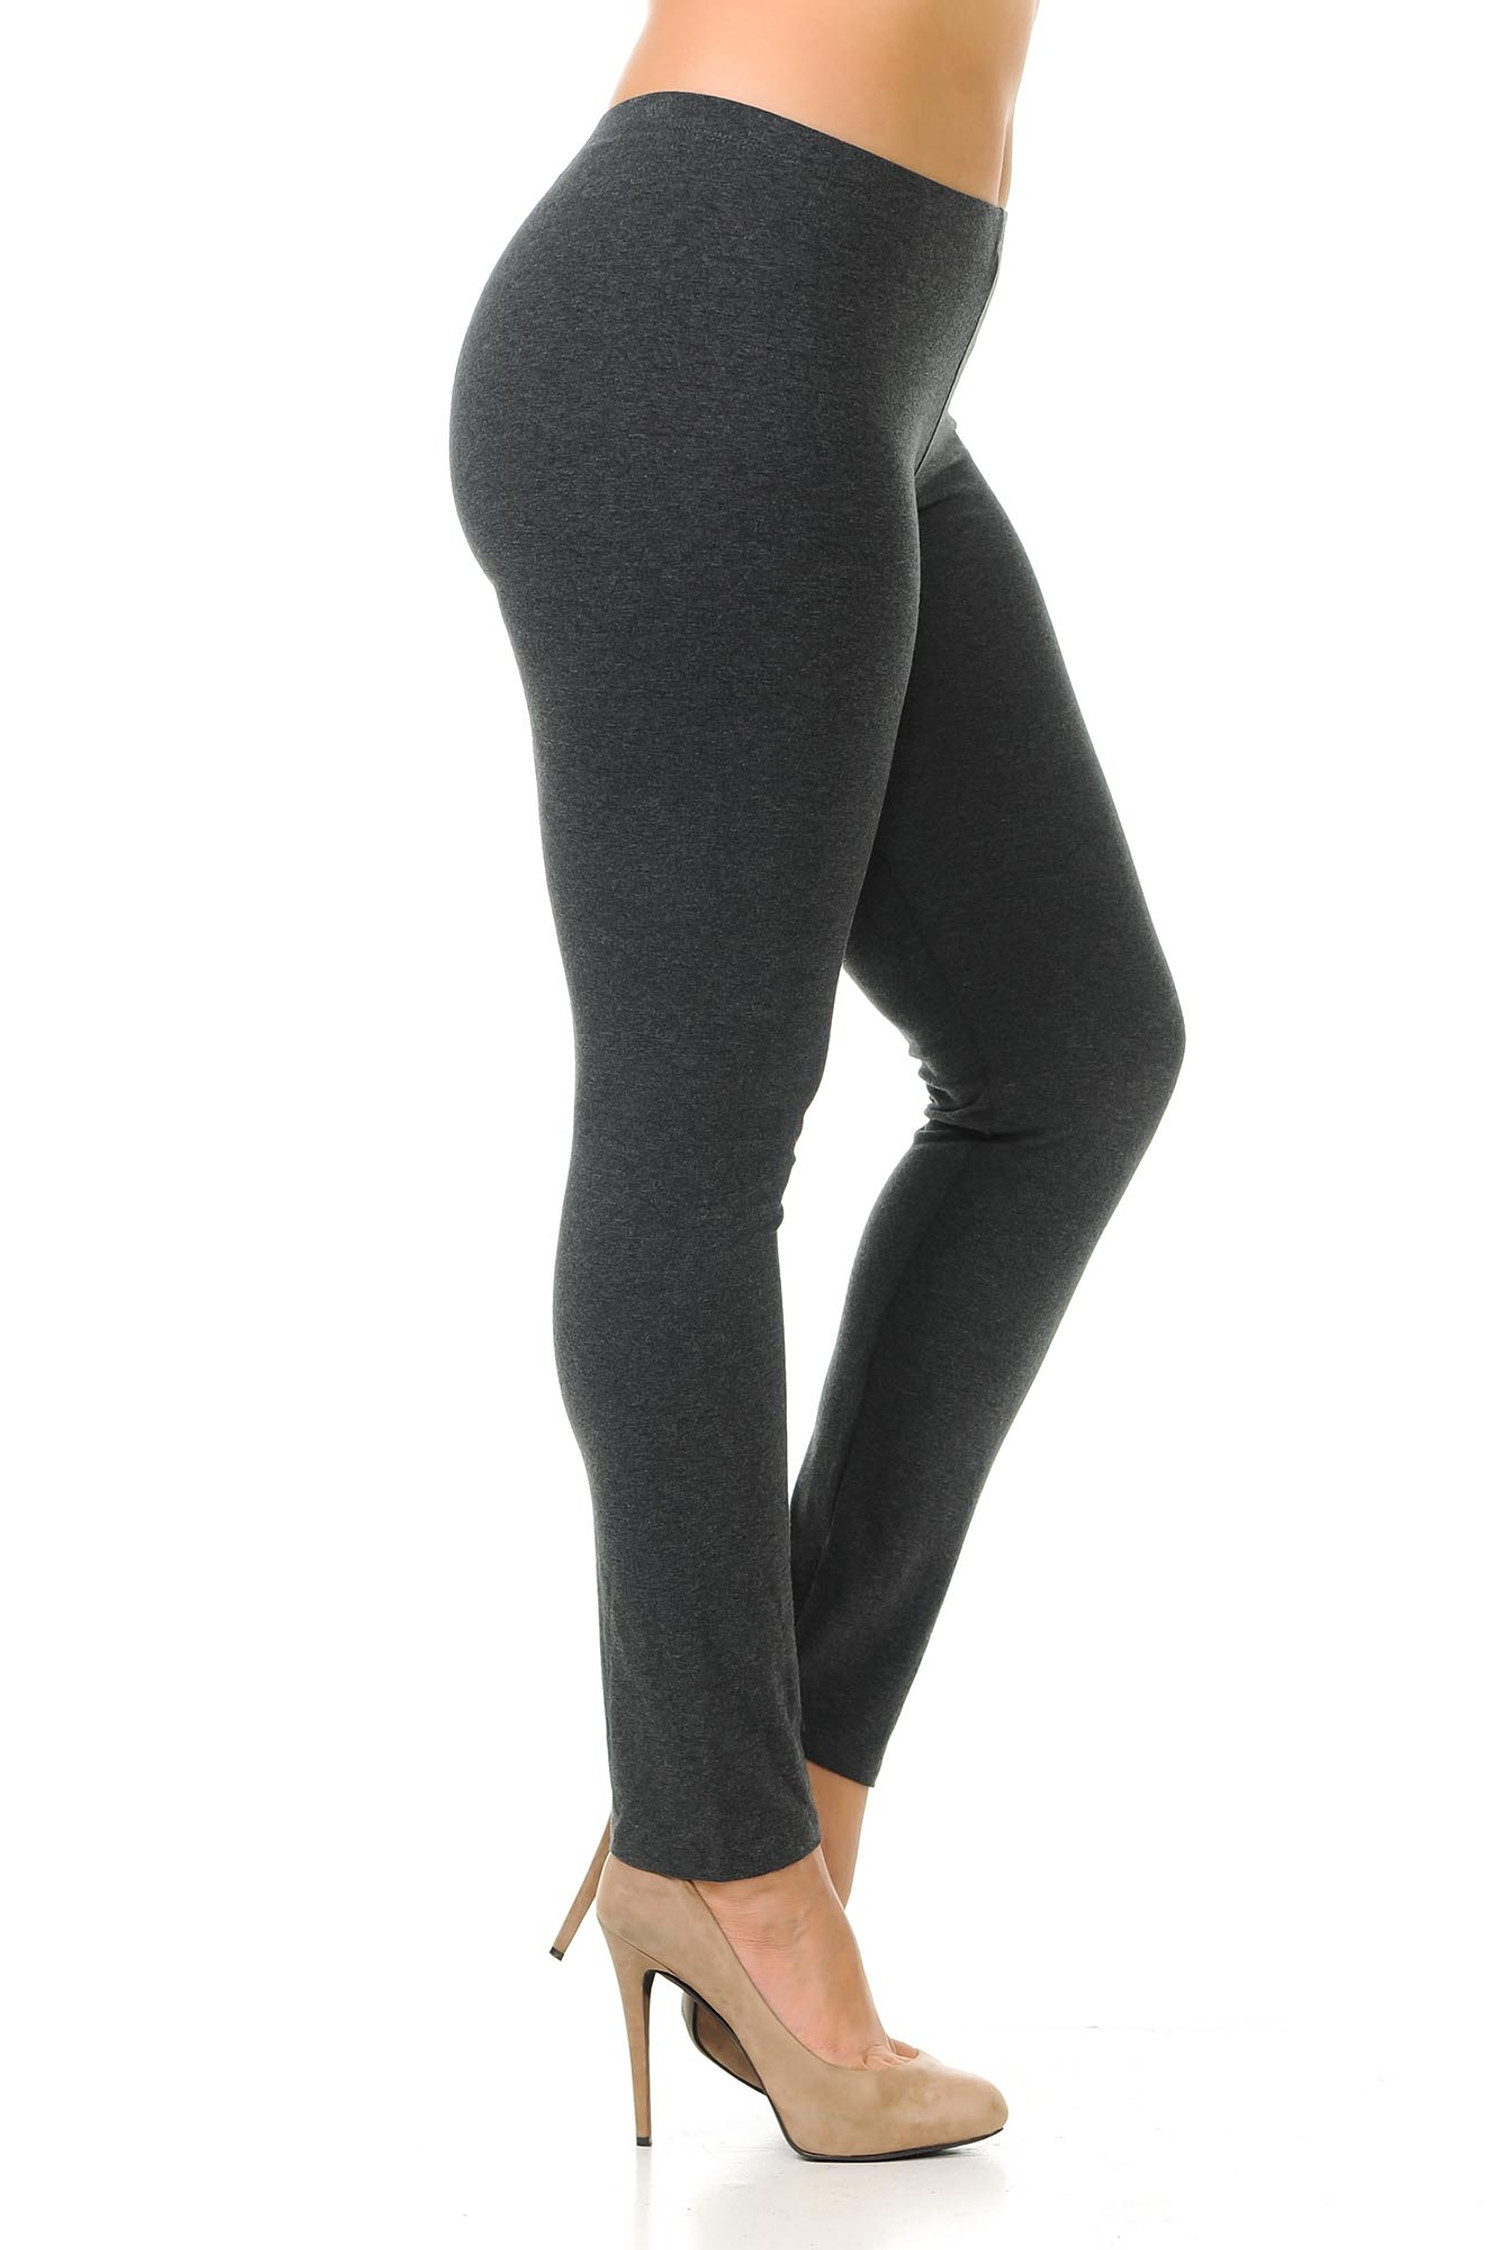 Right side view of charcoal plus size USA Cotton Full Length Leggings.